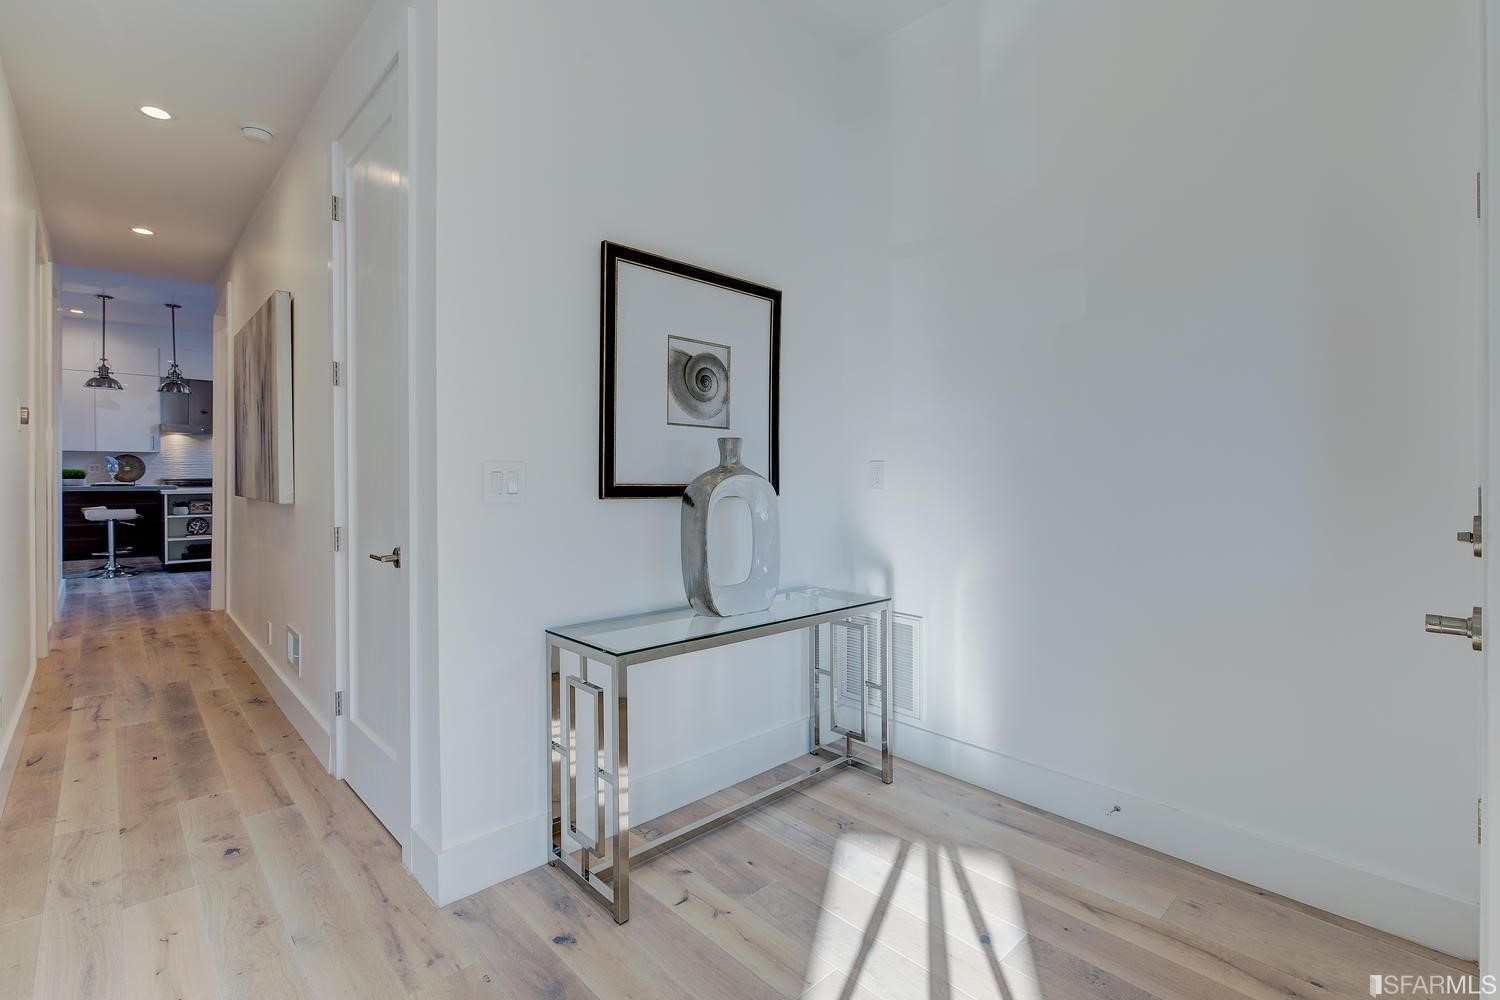 Additional photo for property listing at 884-886 Alabama  SAN FRANCISCO, CALIFORNIA 94110